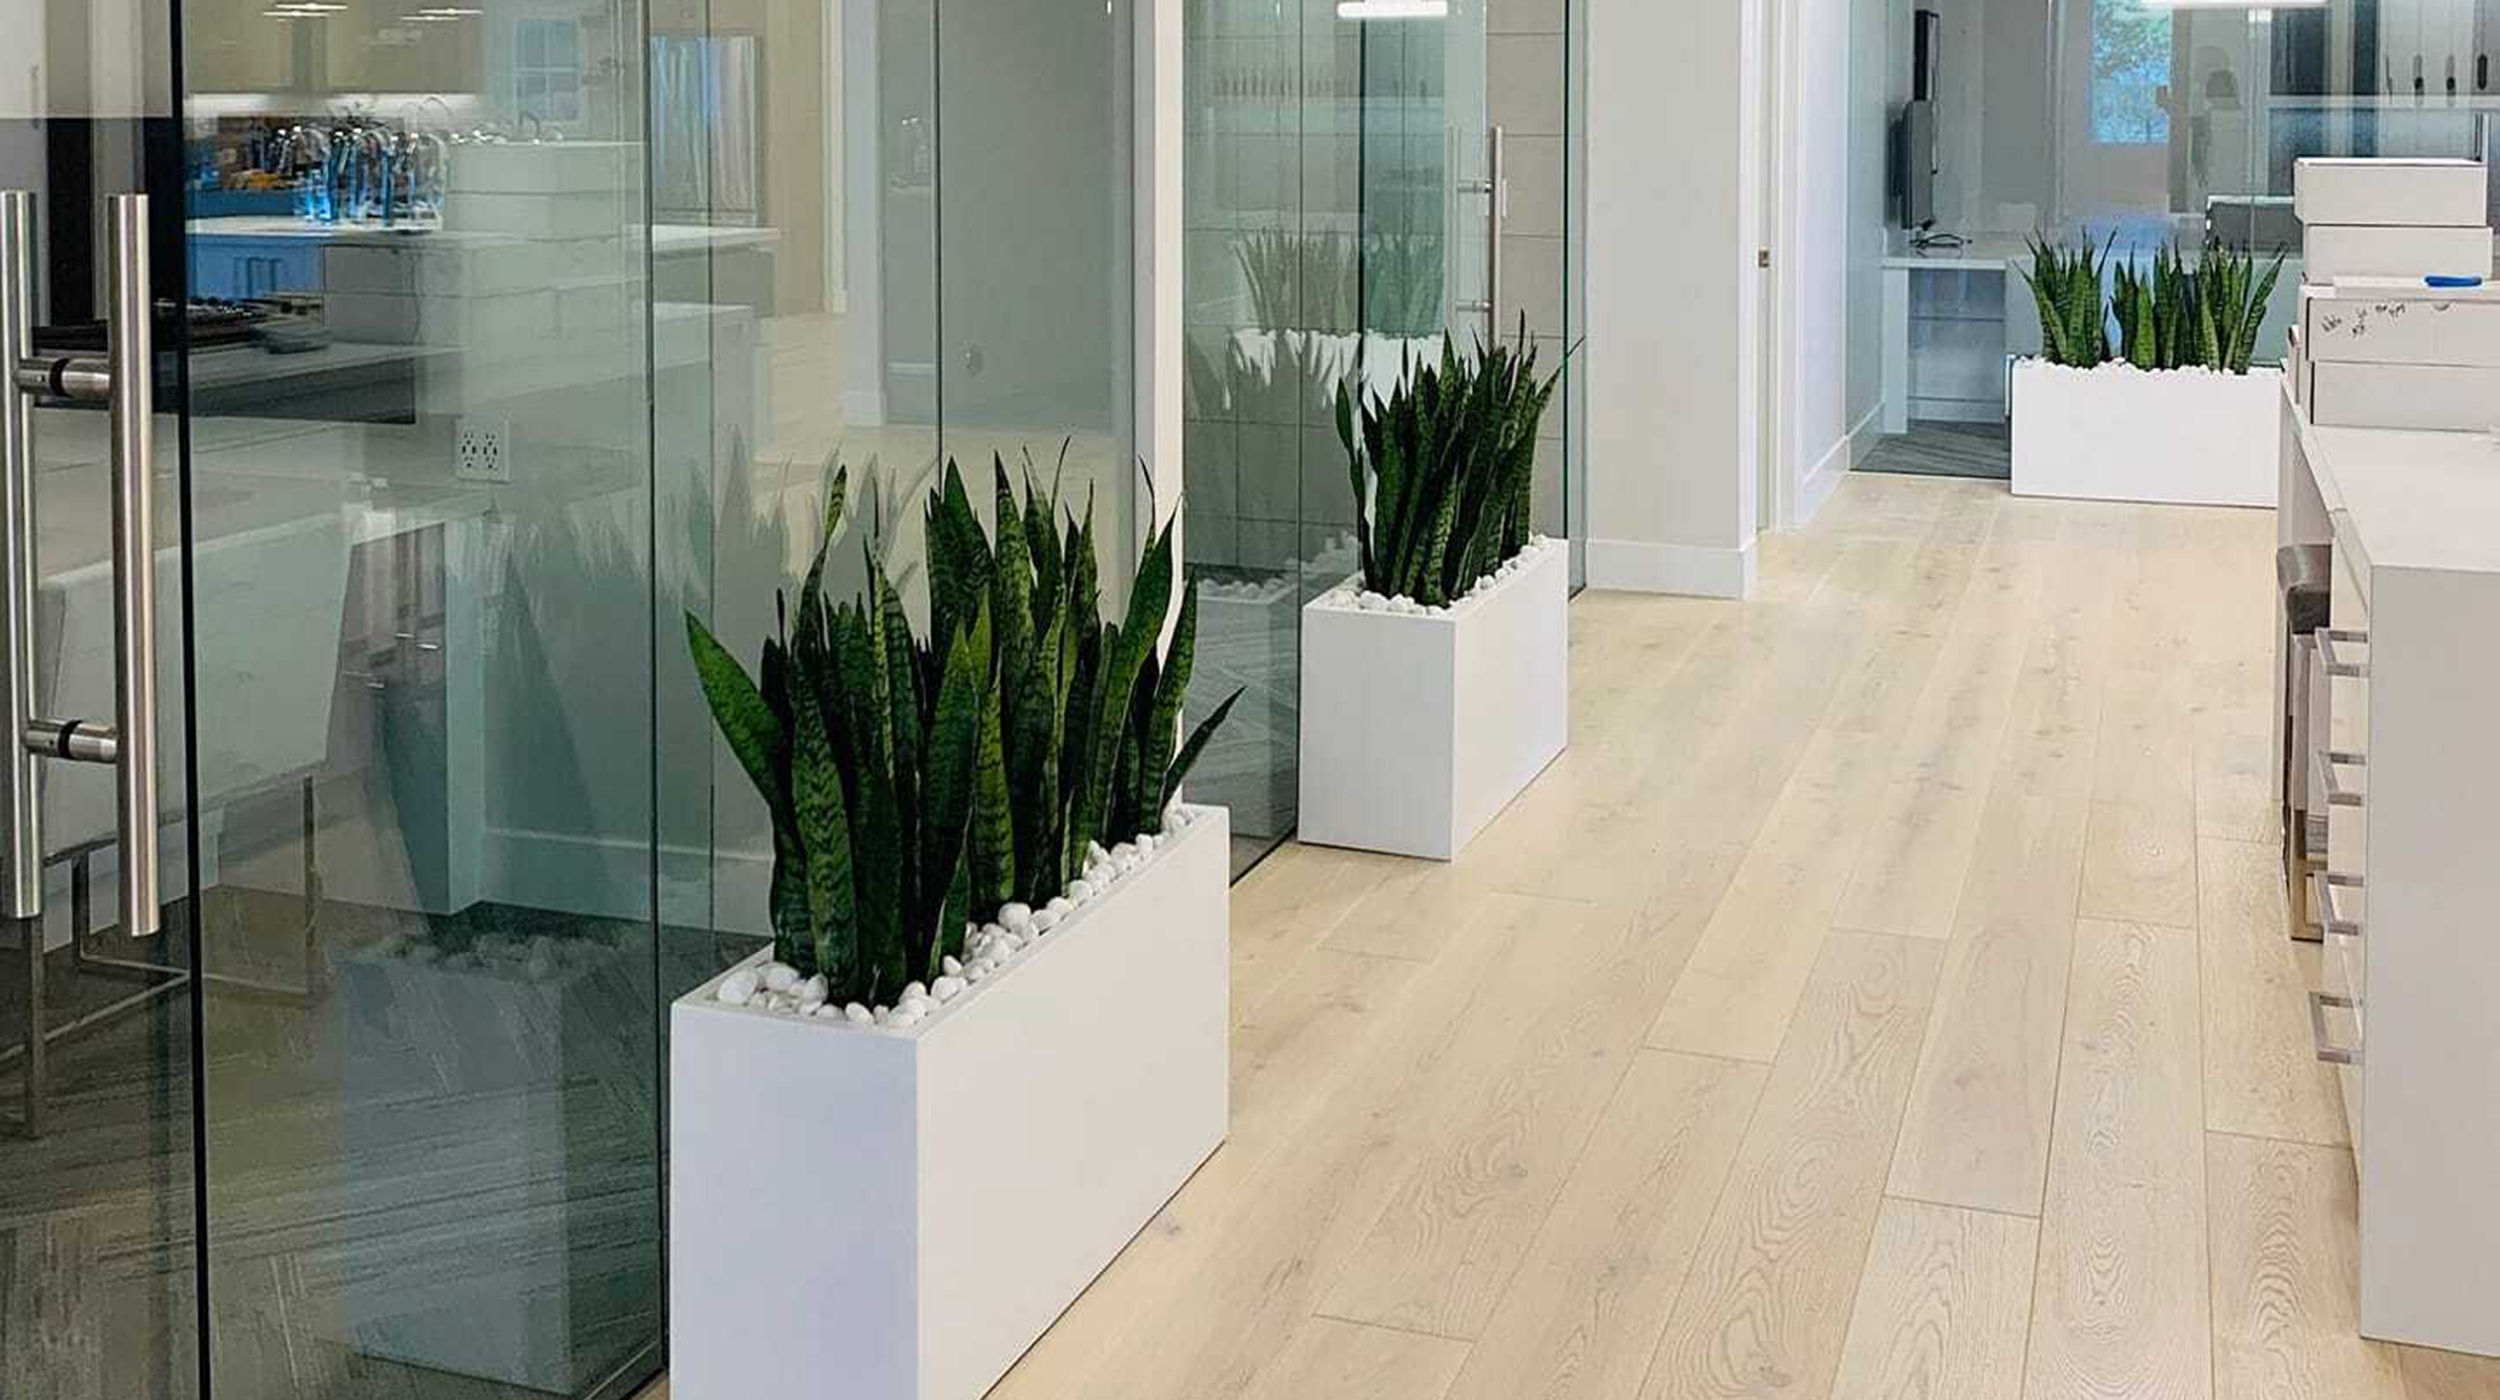 Potted plants line an office hallway